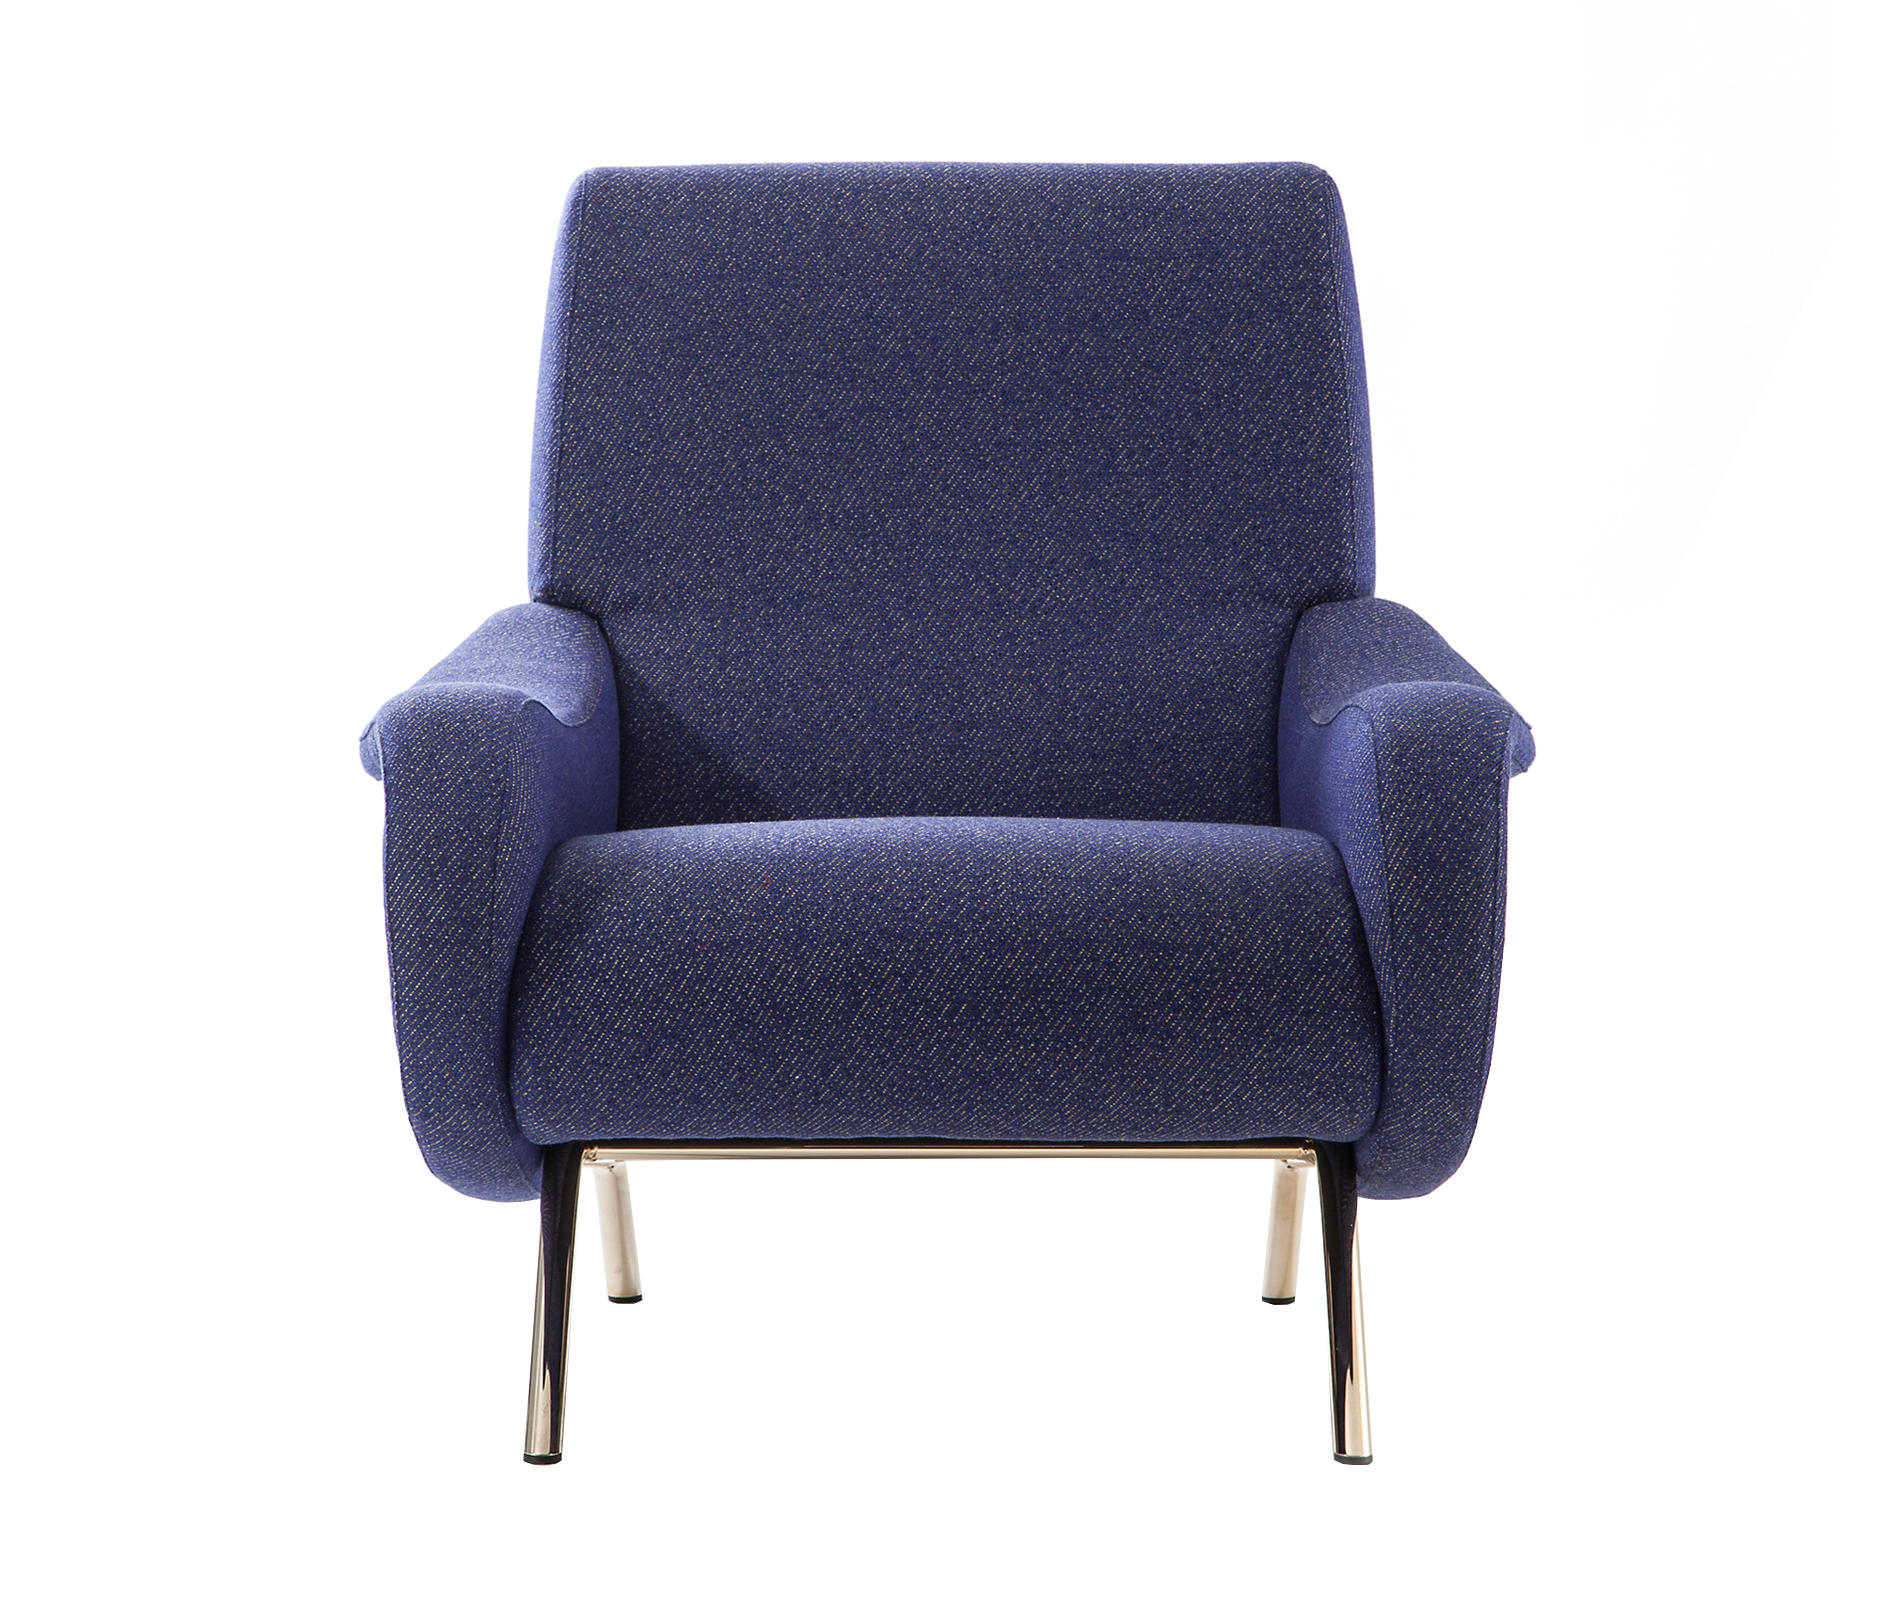 720 Lady Lounge Chairs From Cassina Architonic